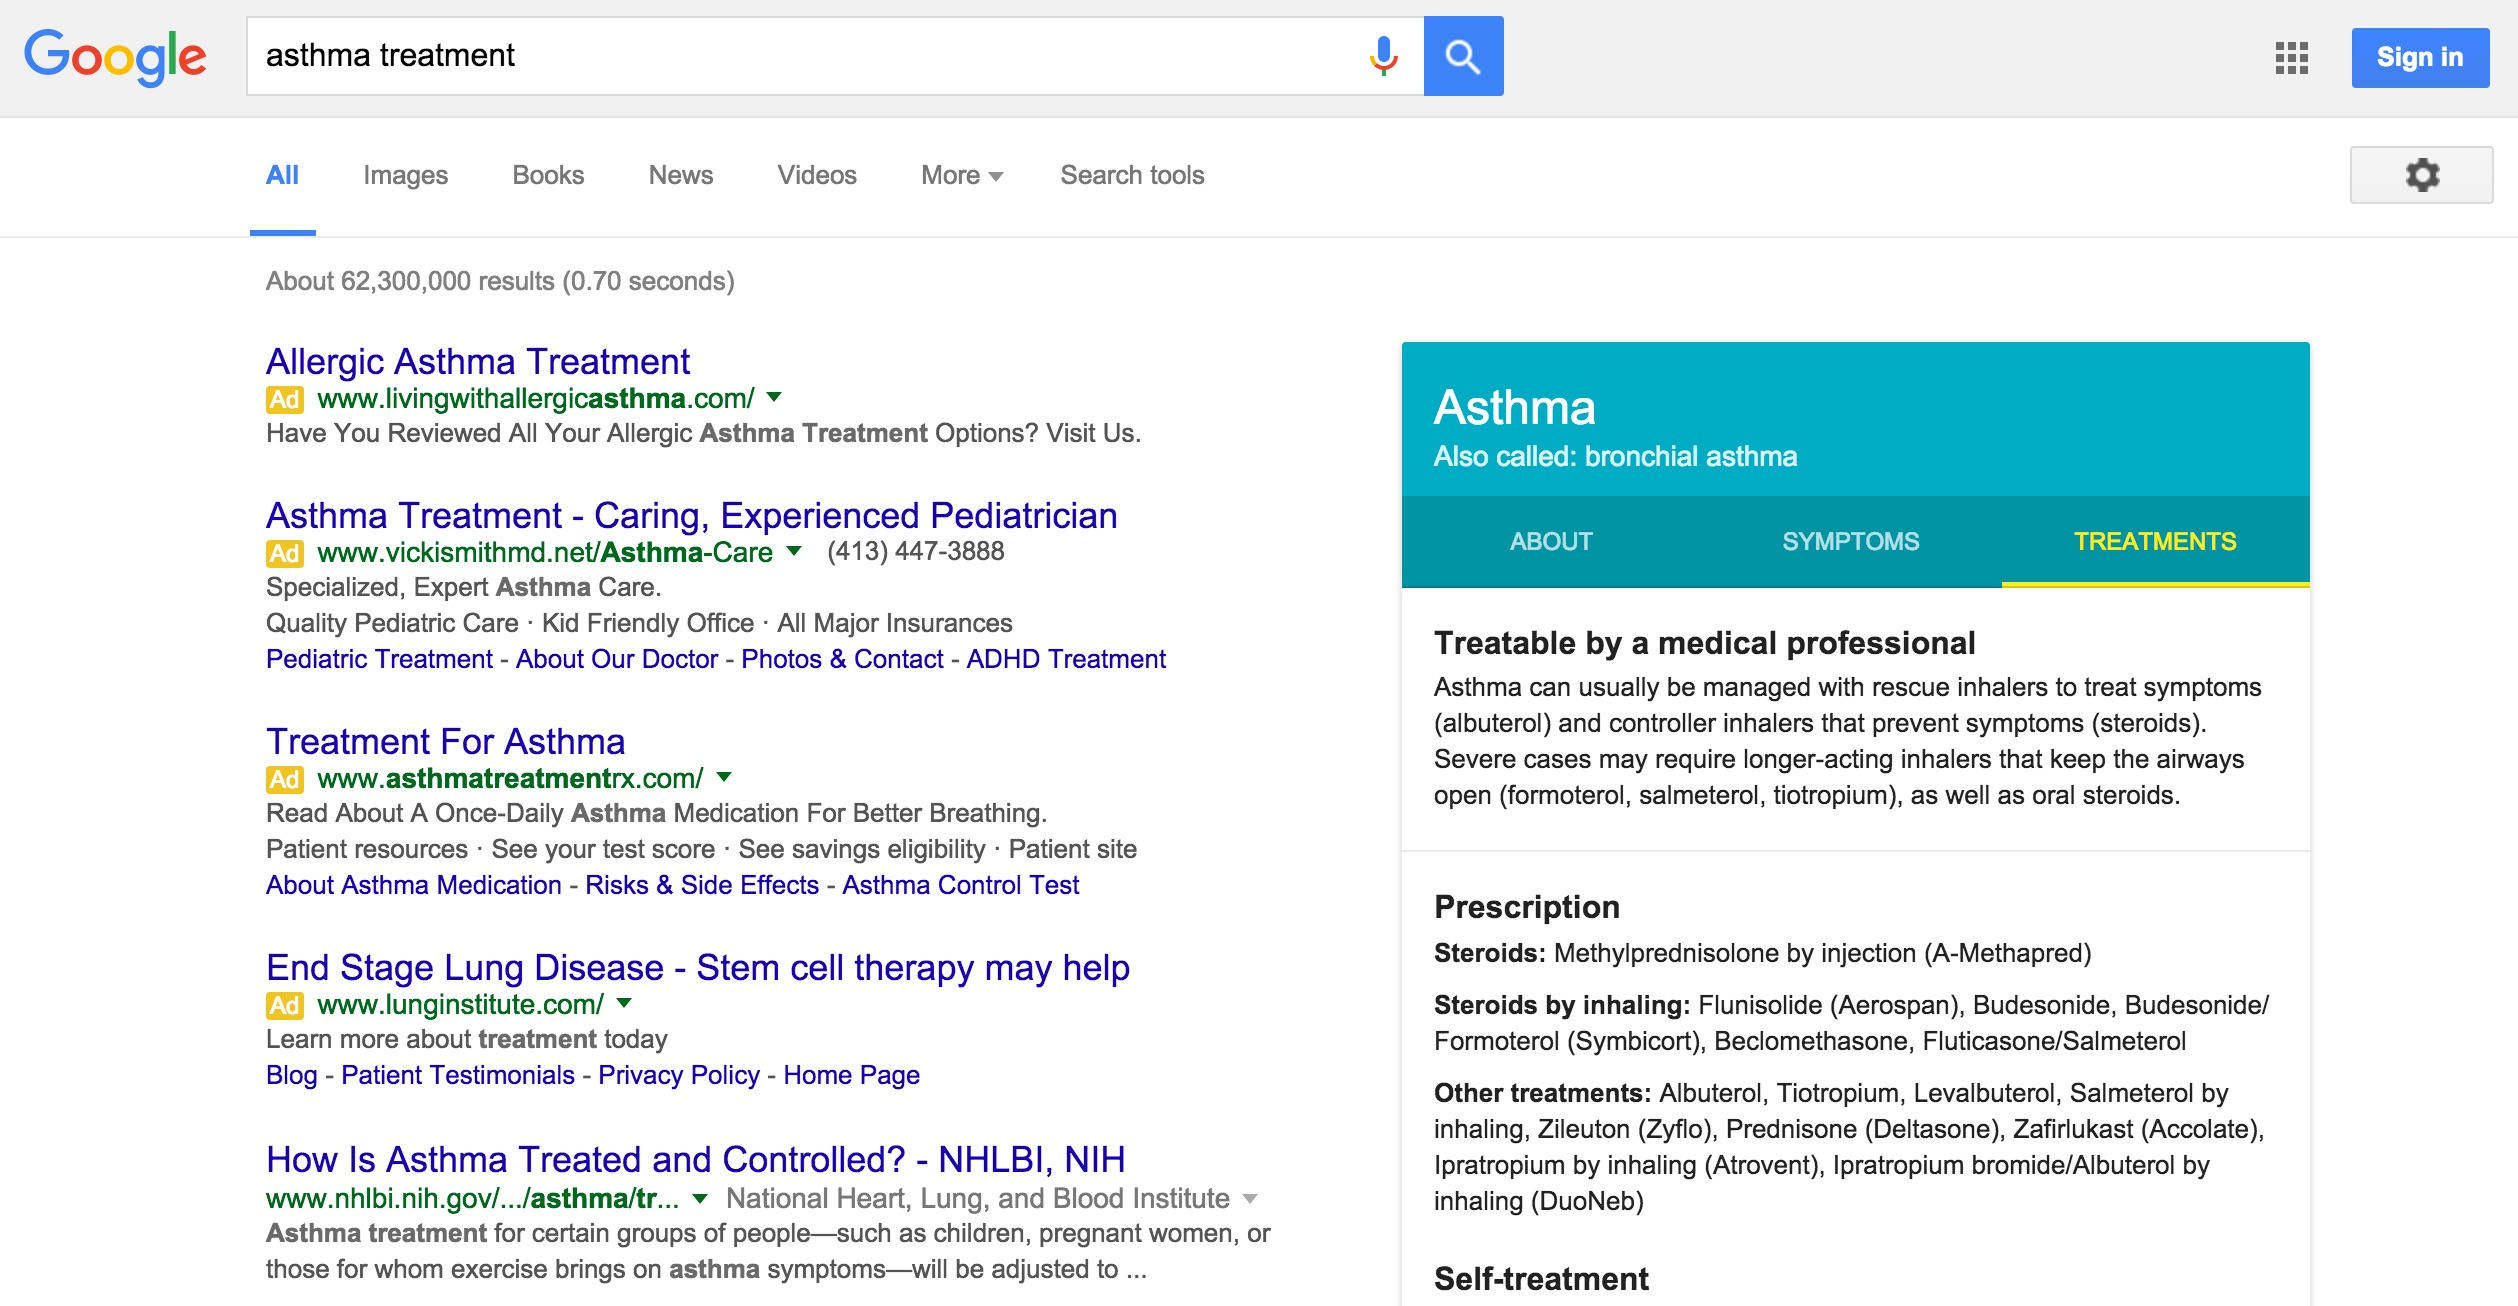 A Google search page for 'asthma treatment'